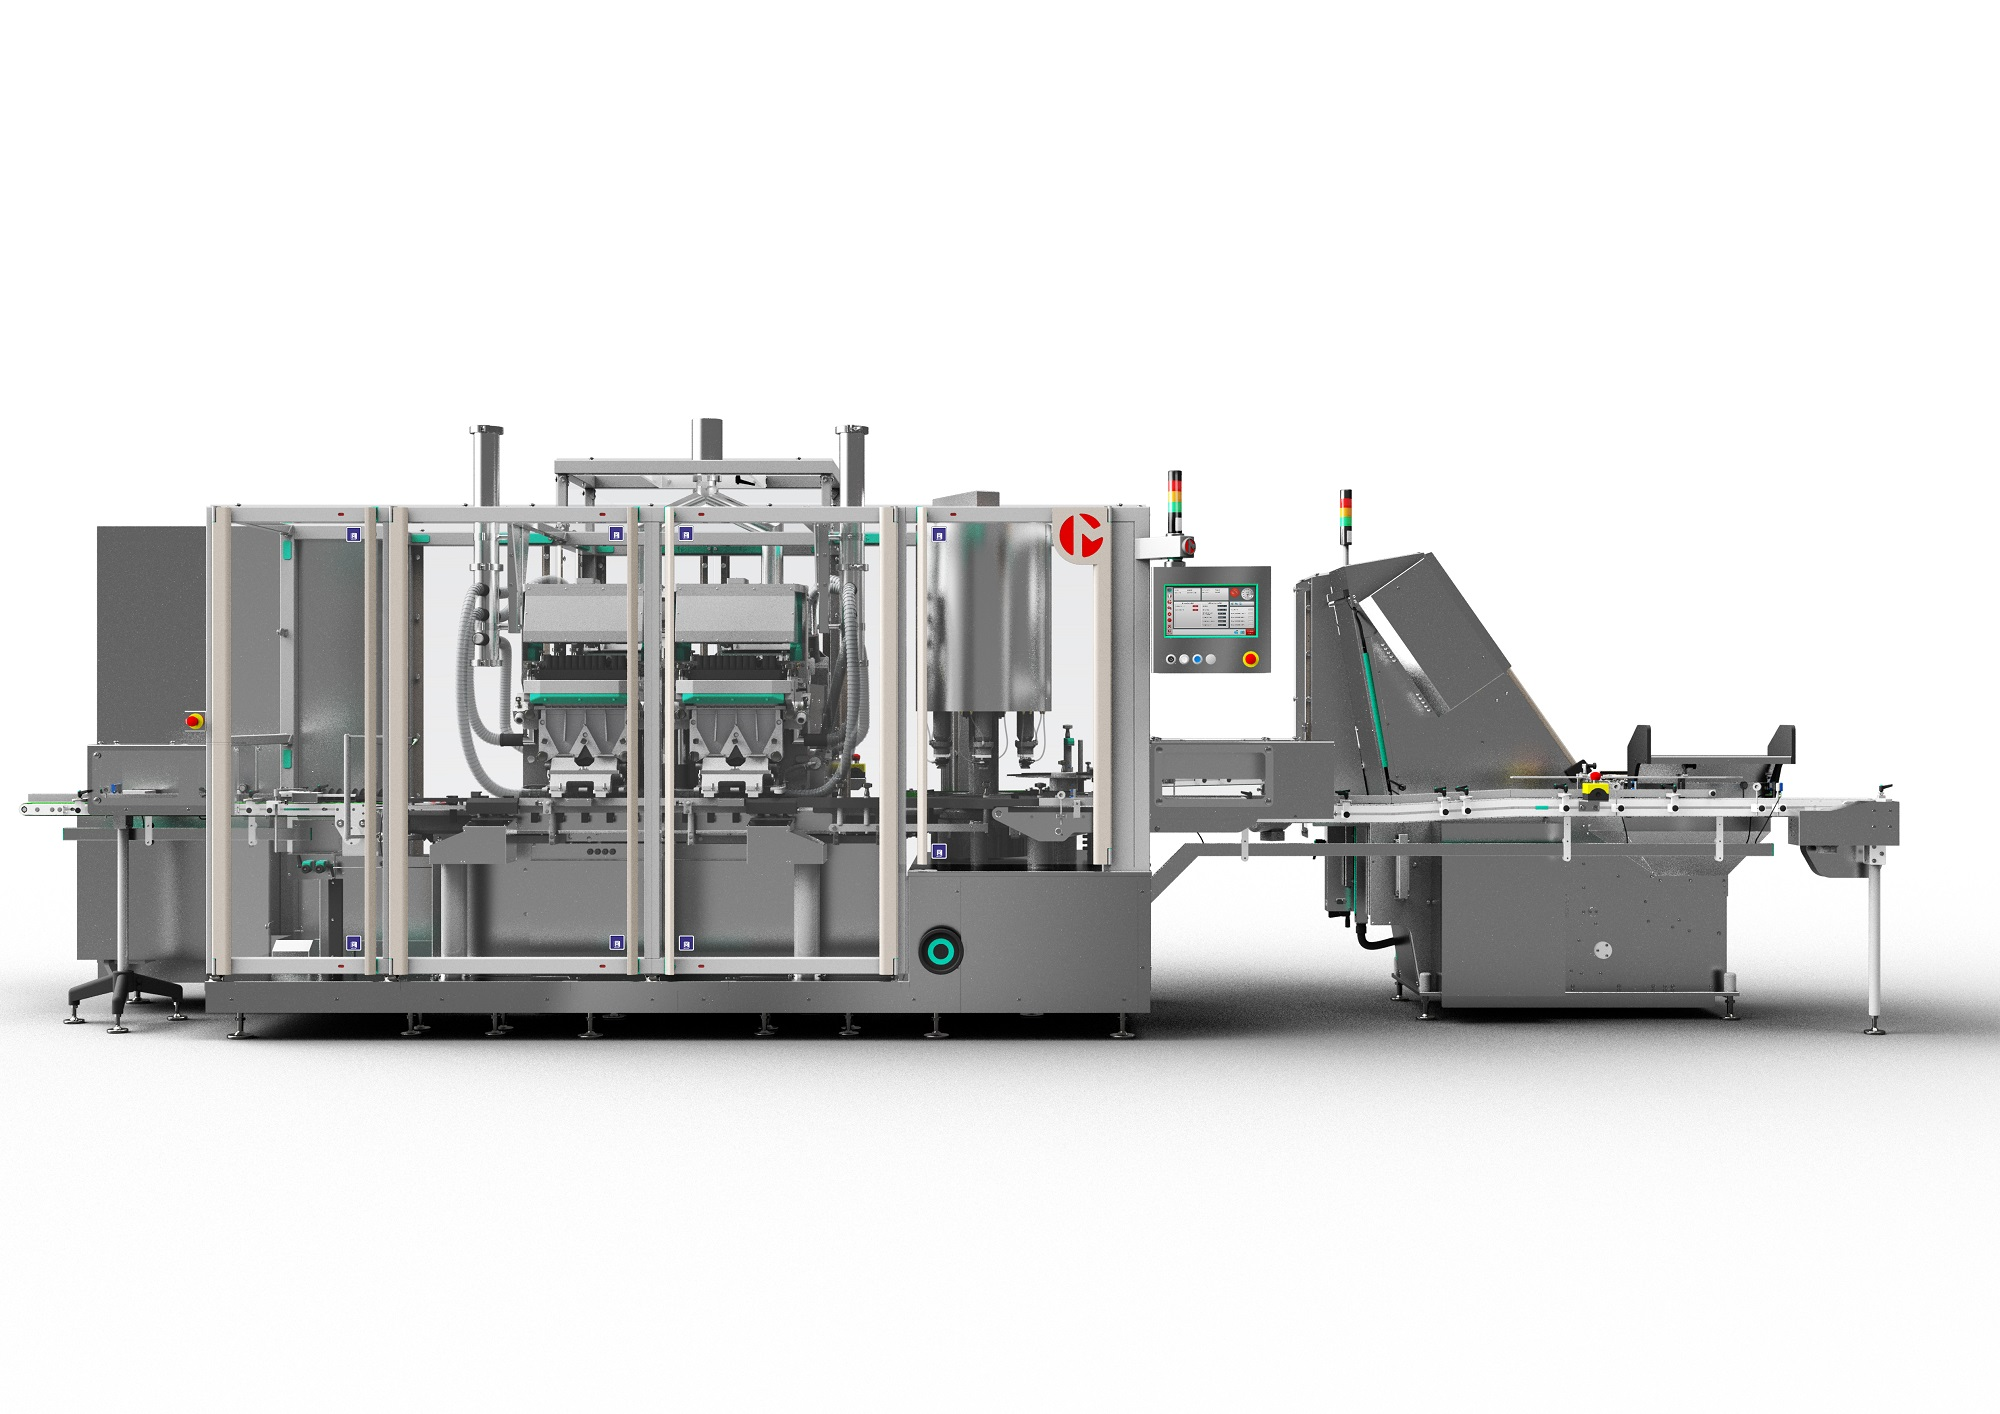 Interphex New York: Marchesini Group presents three machines for the pharmaceutical and nutraceutical market